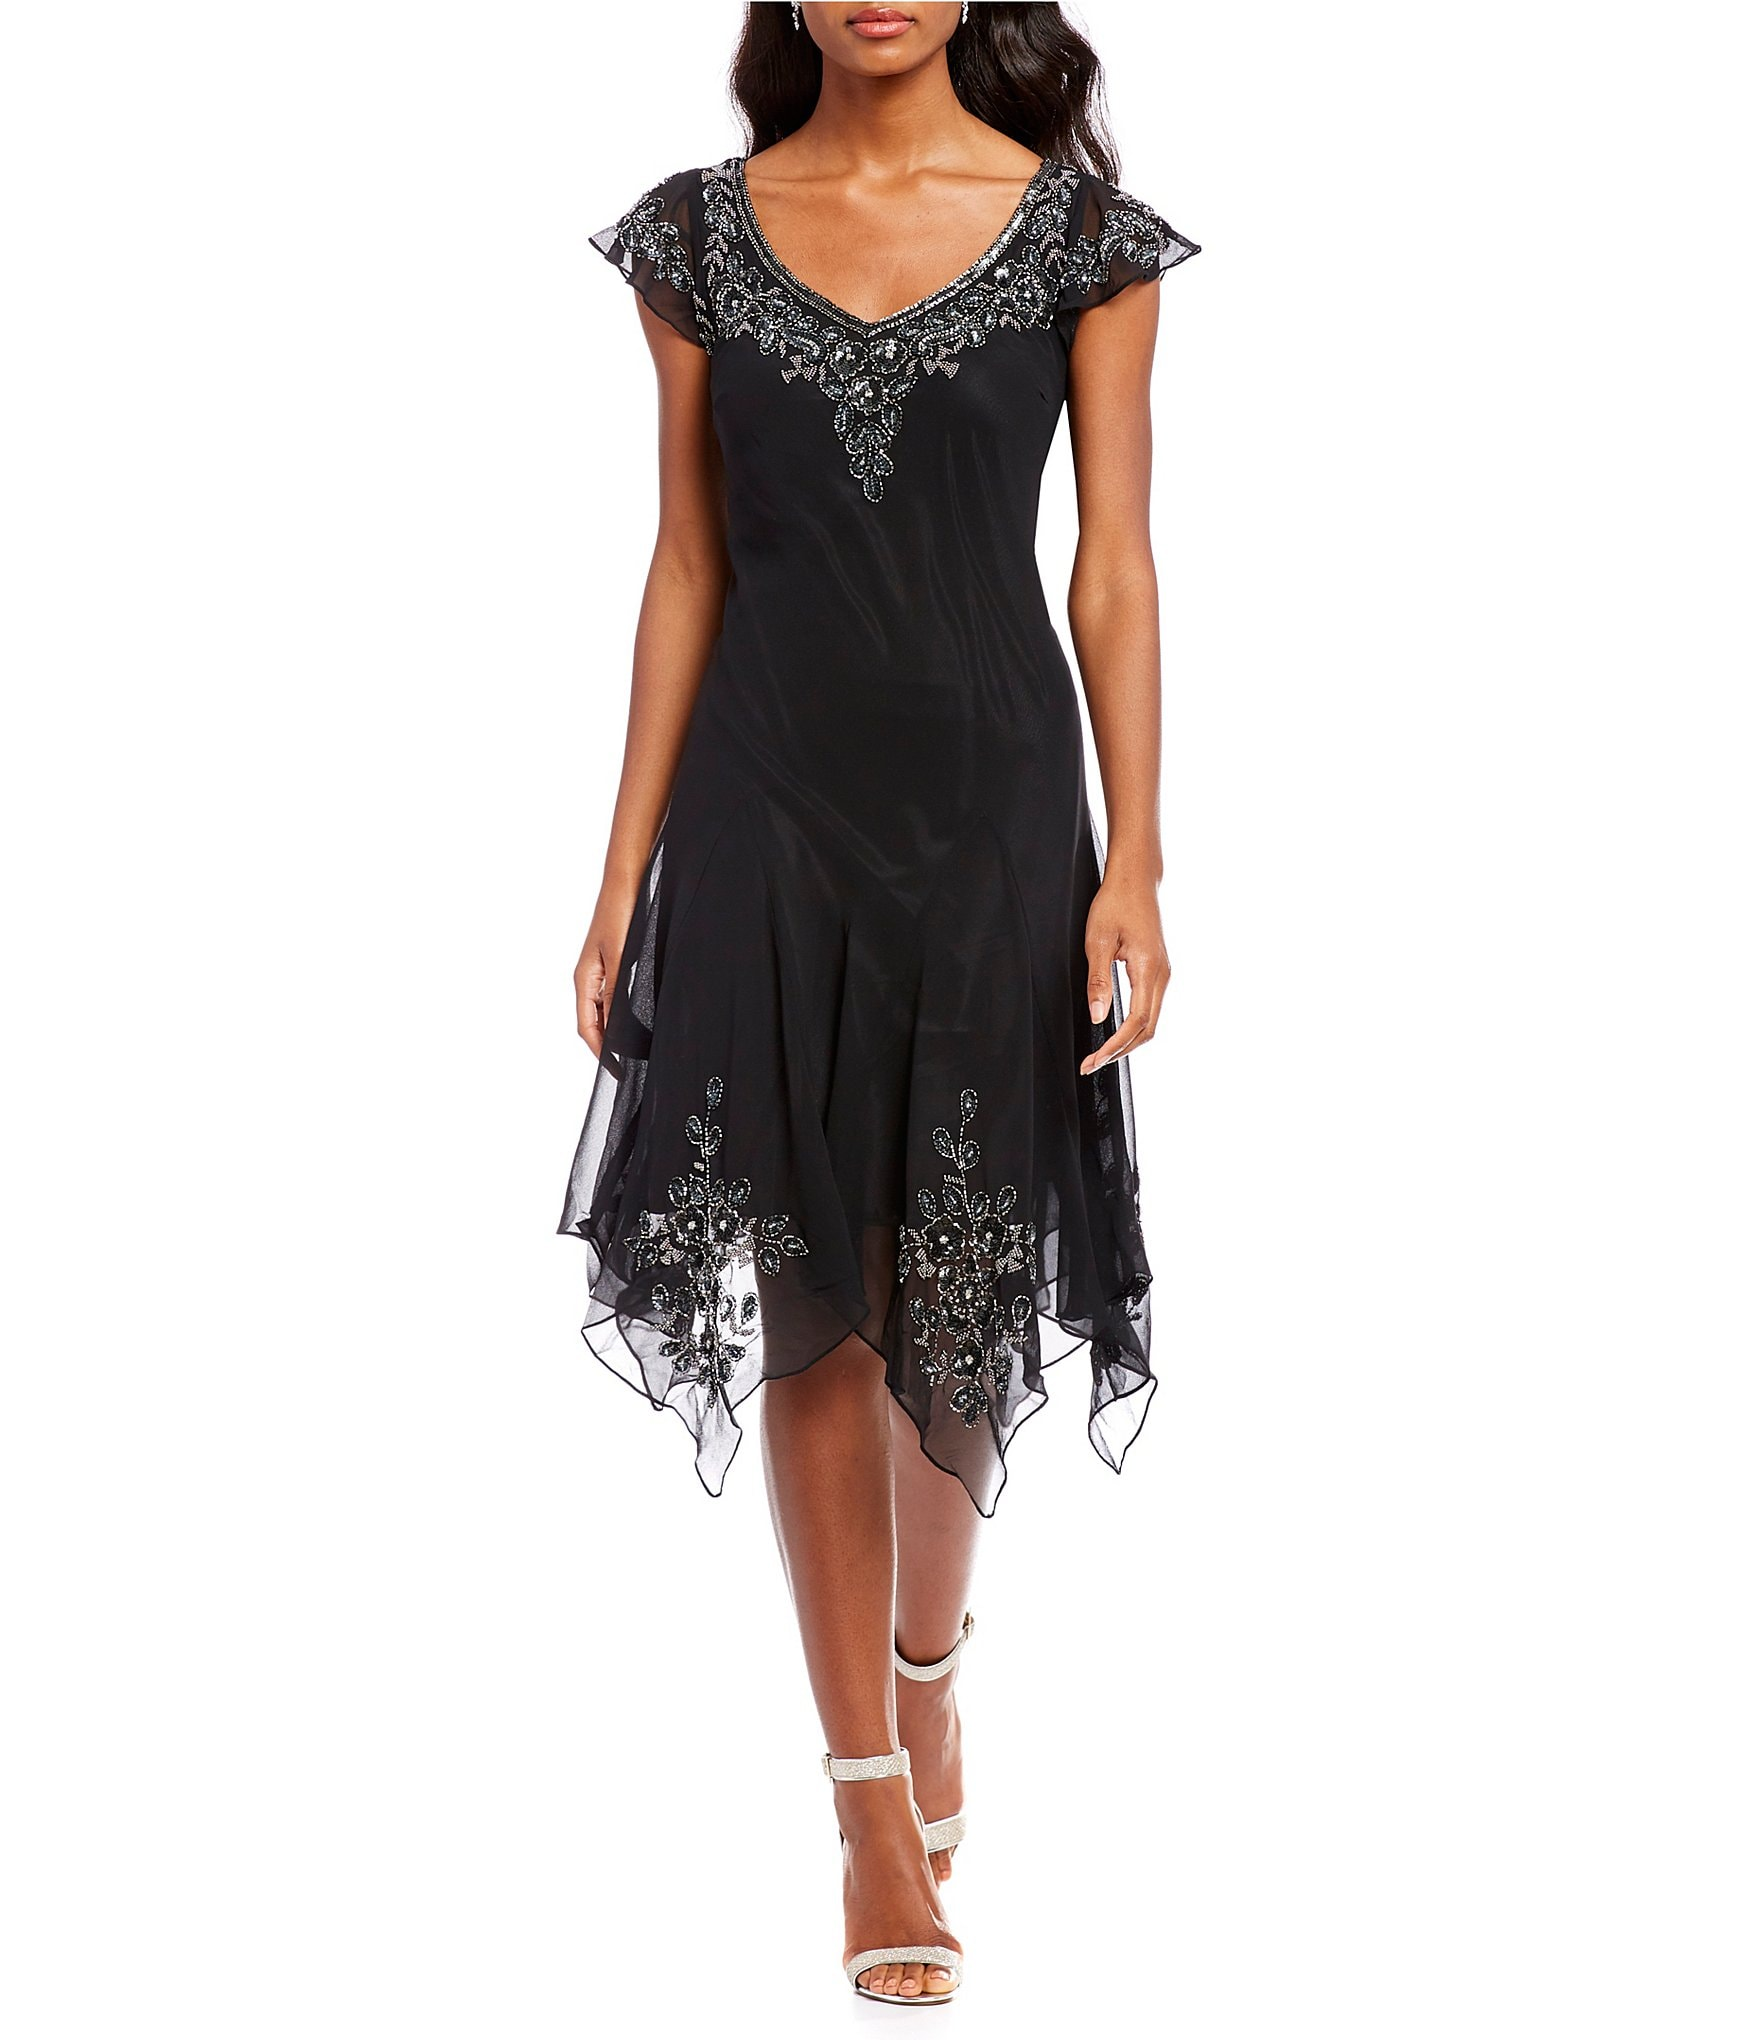 91ffa8729deb Black Women's Cocktail & Party Dresses | Dillard's